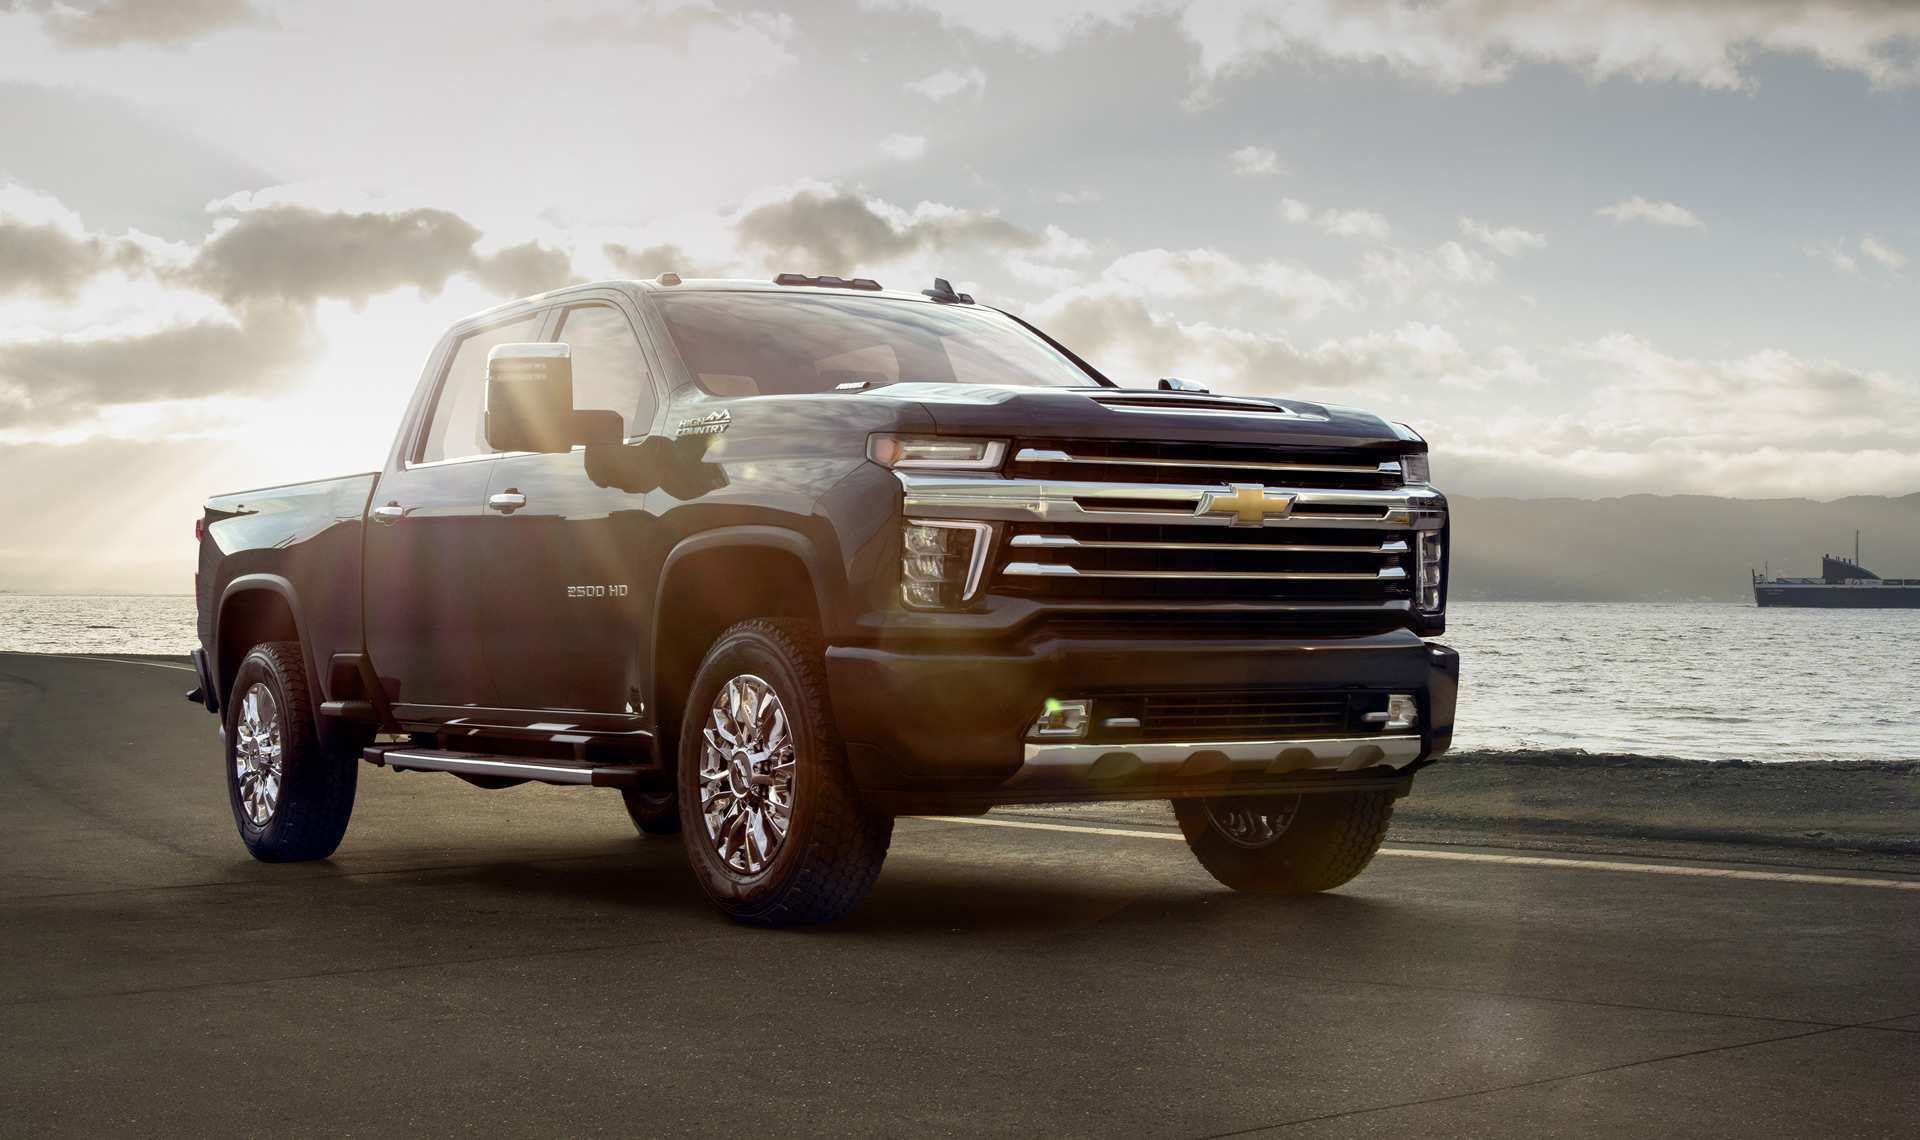 80 All New 2020 Chevy Silverado 1500 2500 Rumors by 2020 Chevy Silverado 1500 2500